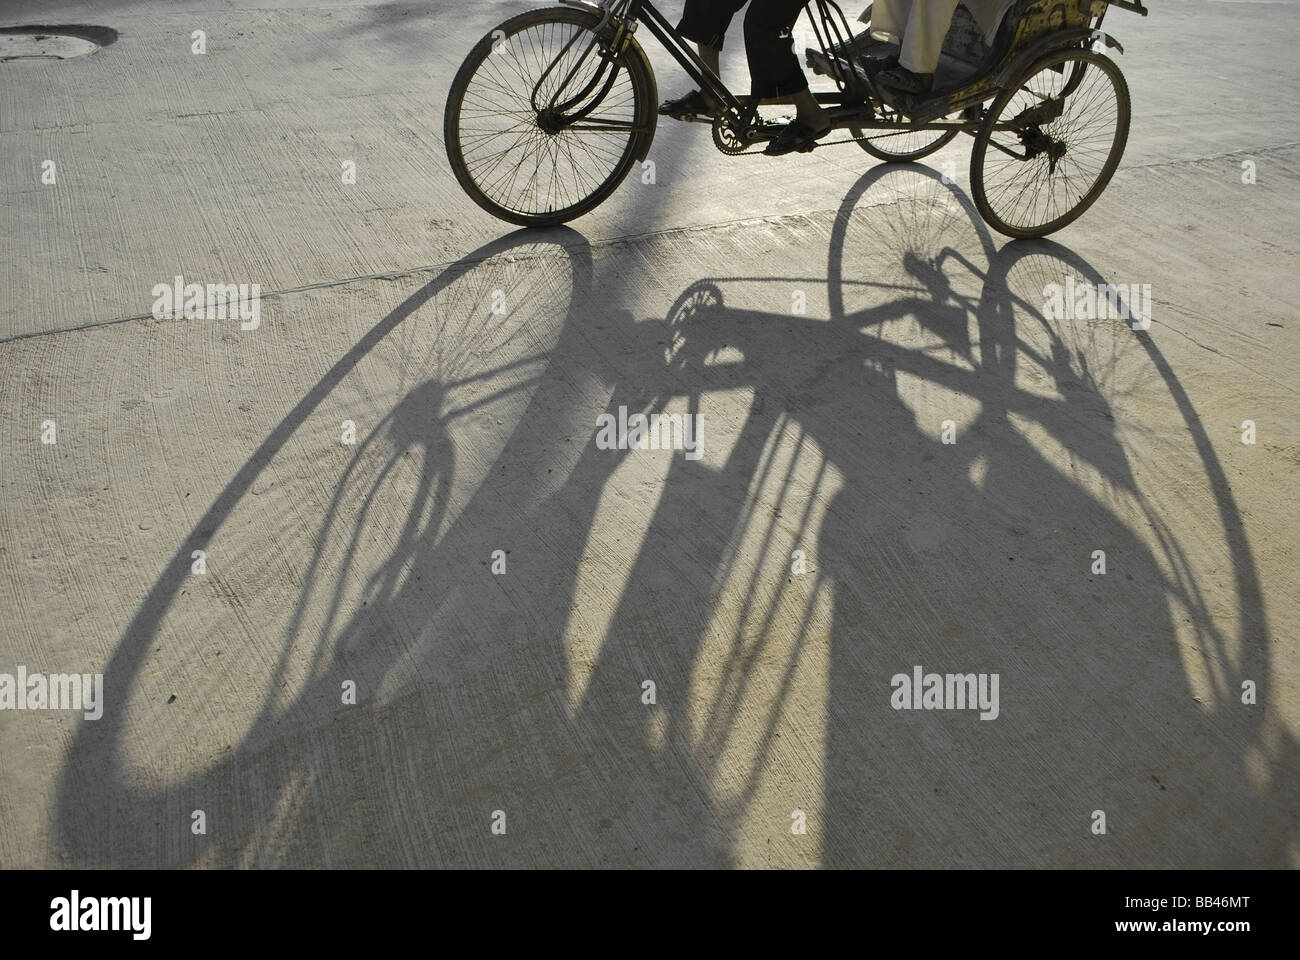 Long shadow of tricycles - Stock Image